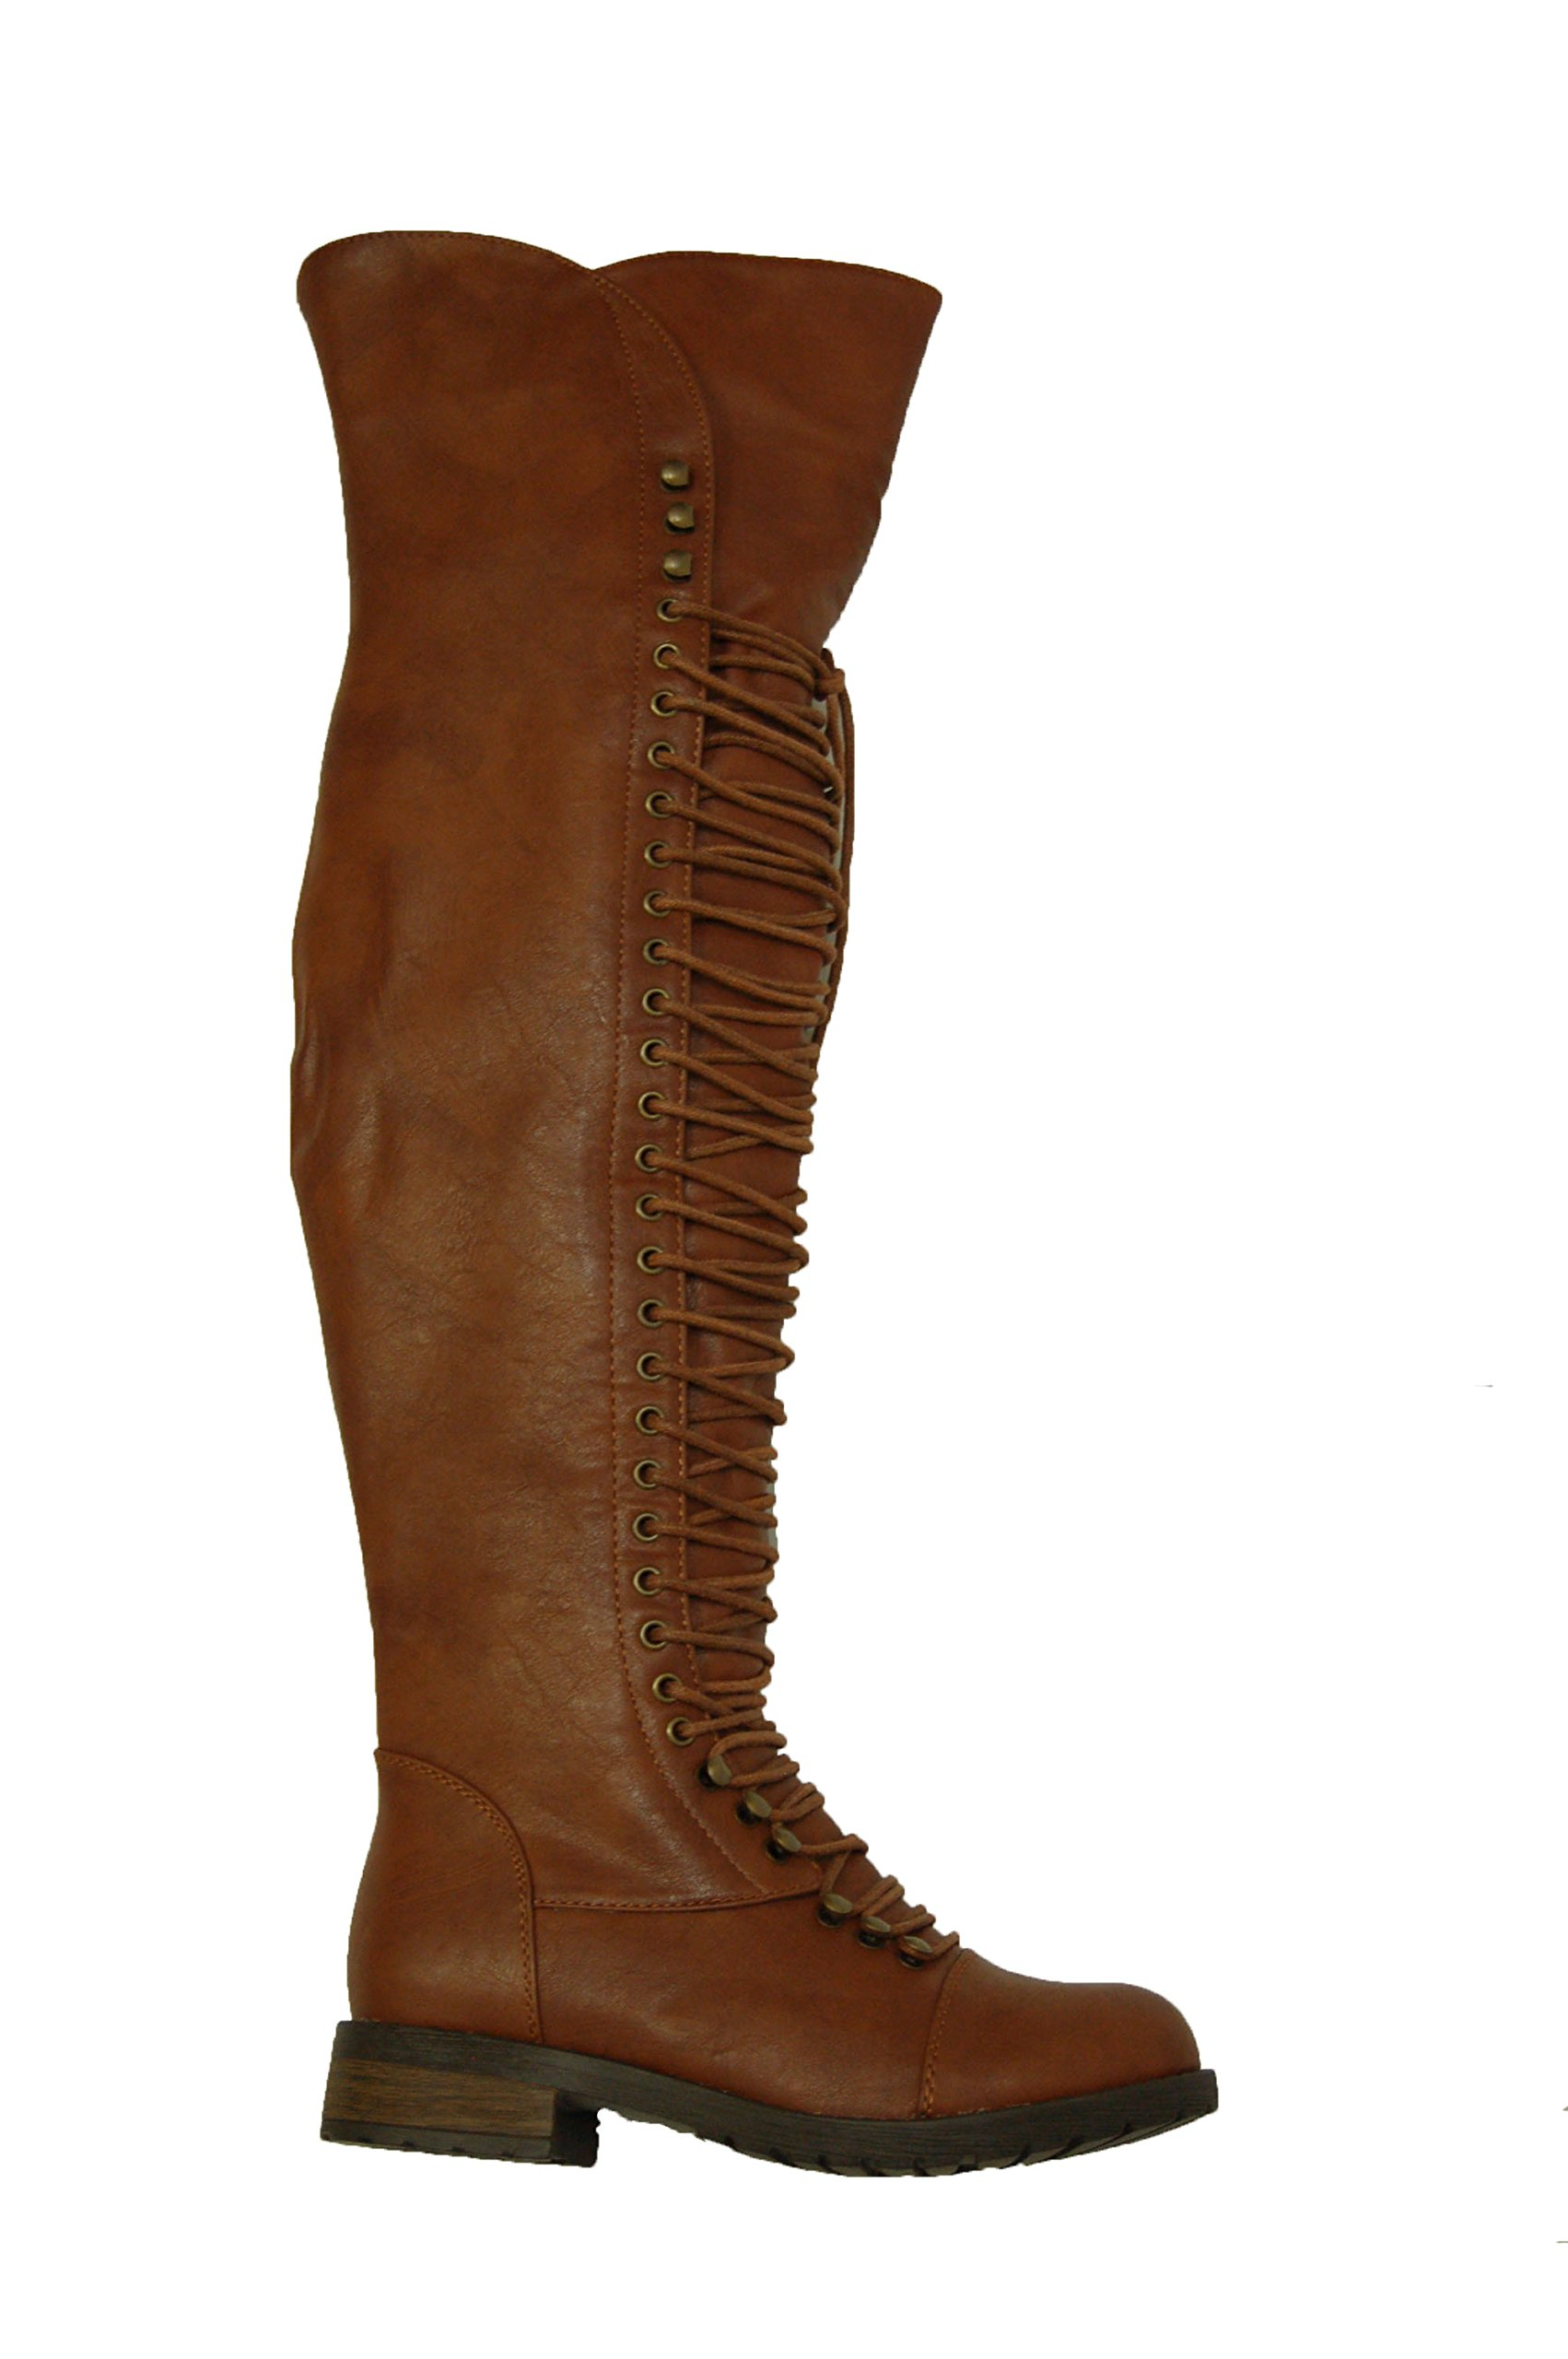 Herstyle Kristrrina Women Military Lace up Thigh High Combat Bootss Brown 10